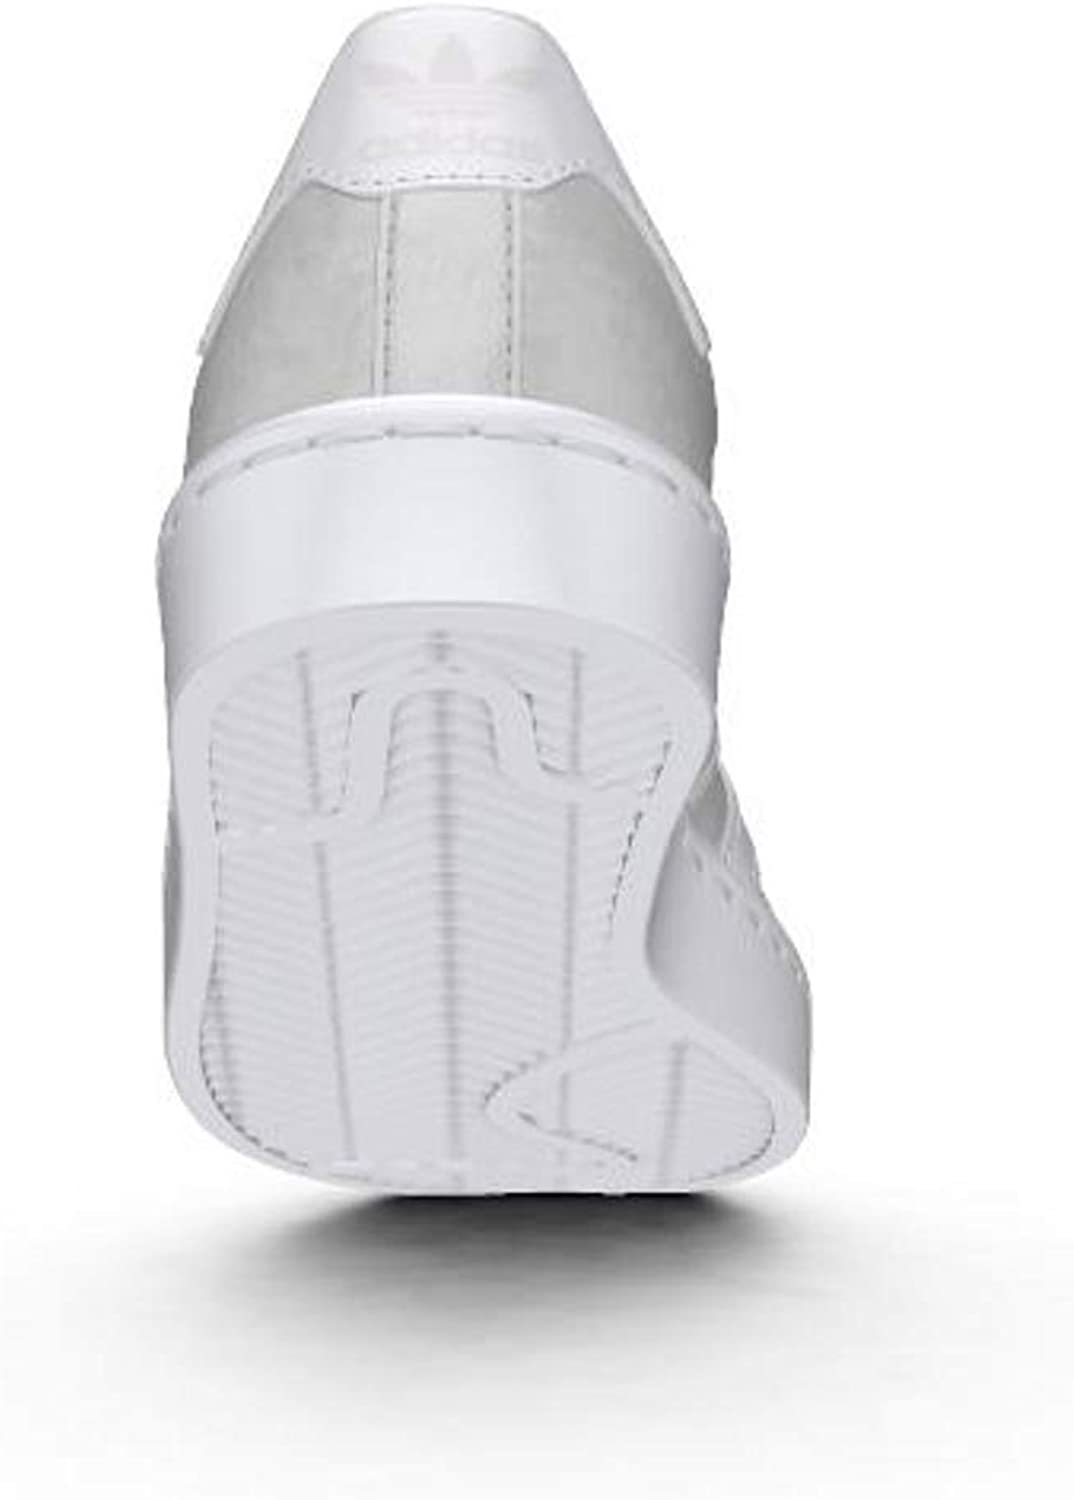 adidas Unisex Kids' Campus C Fitness Shoes Fashion Trainers